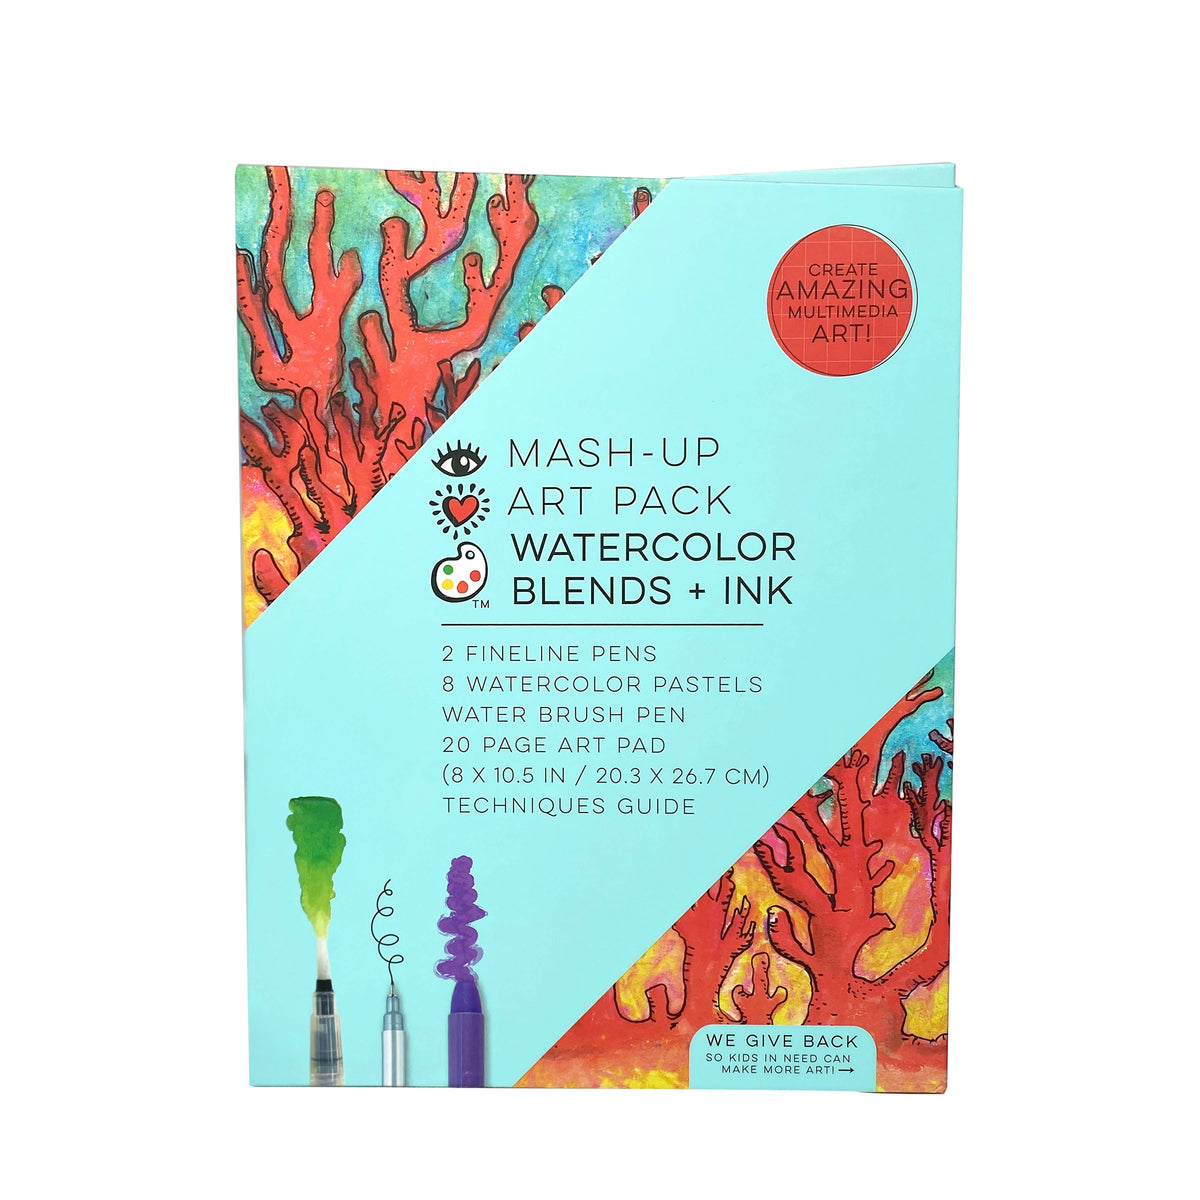 iHeartArt Mash-Up Art Pack Watercolor Blends + Ink